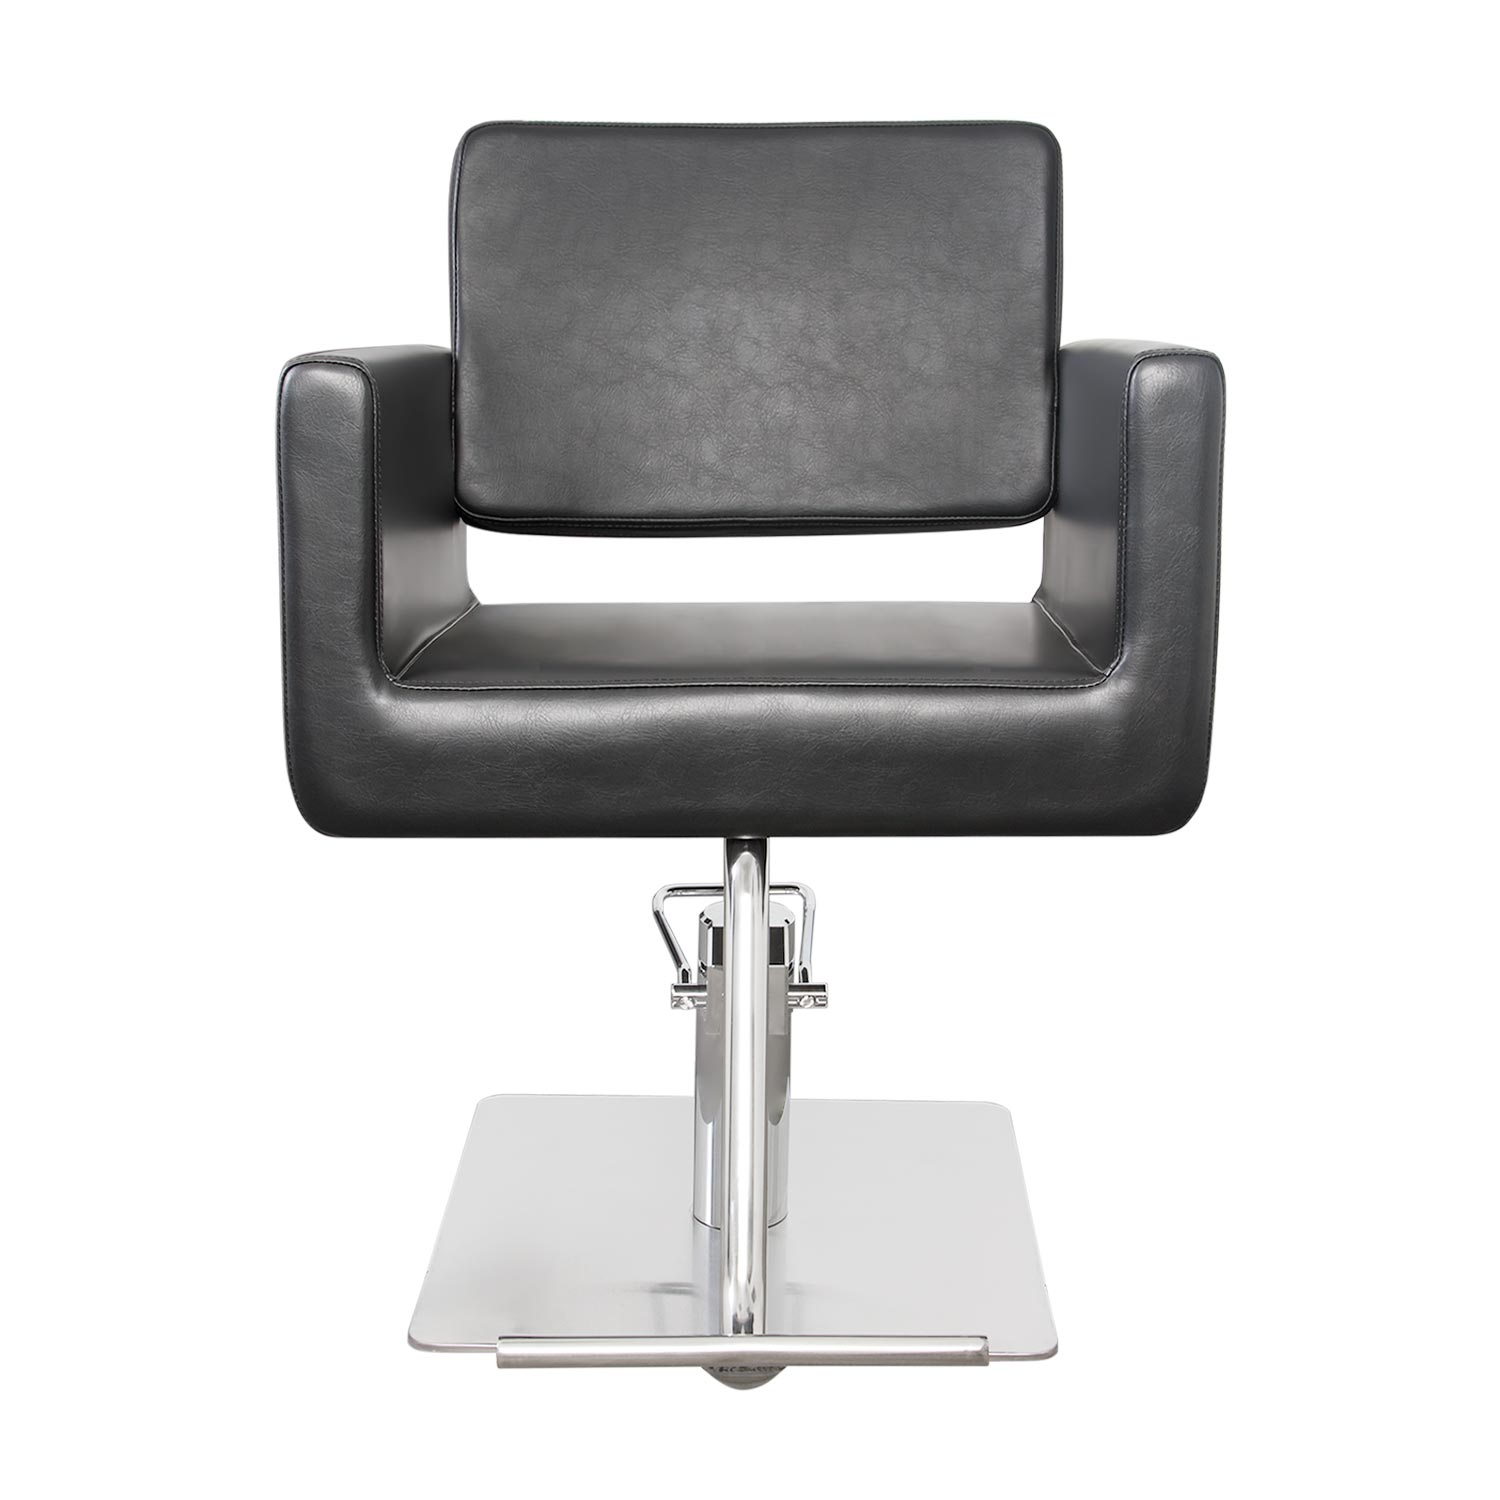 Maxton Square Stylist Chair alternative product image 7